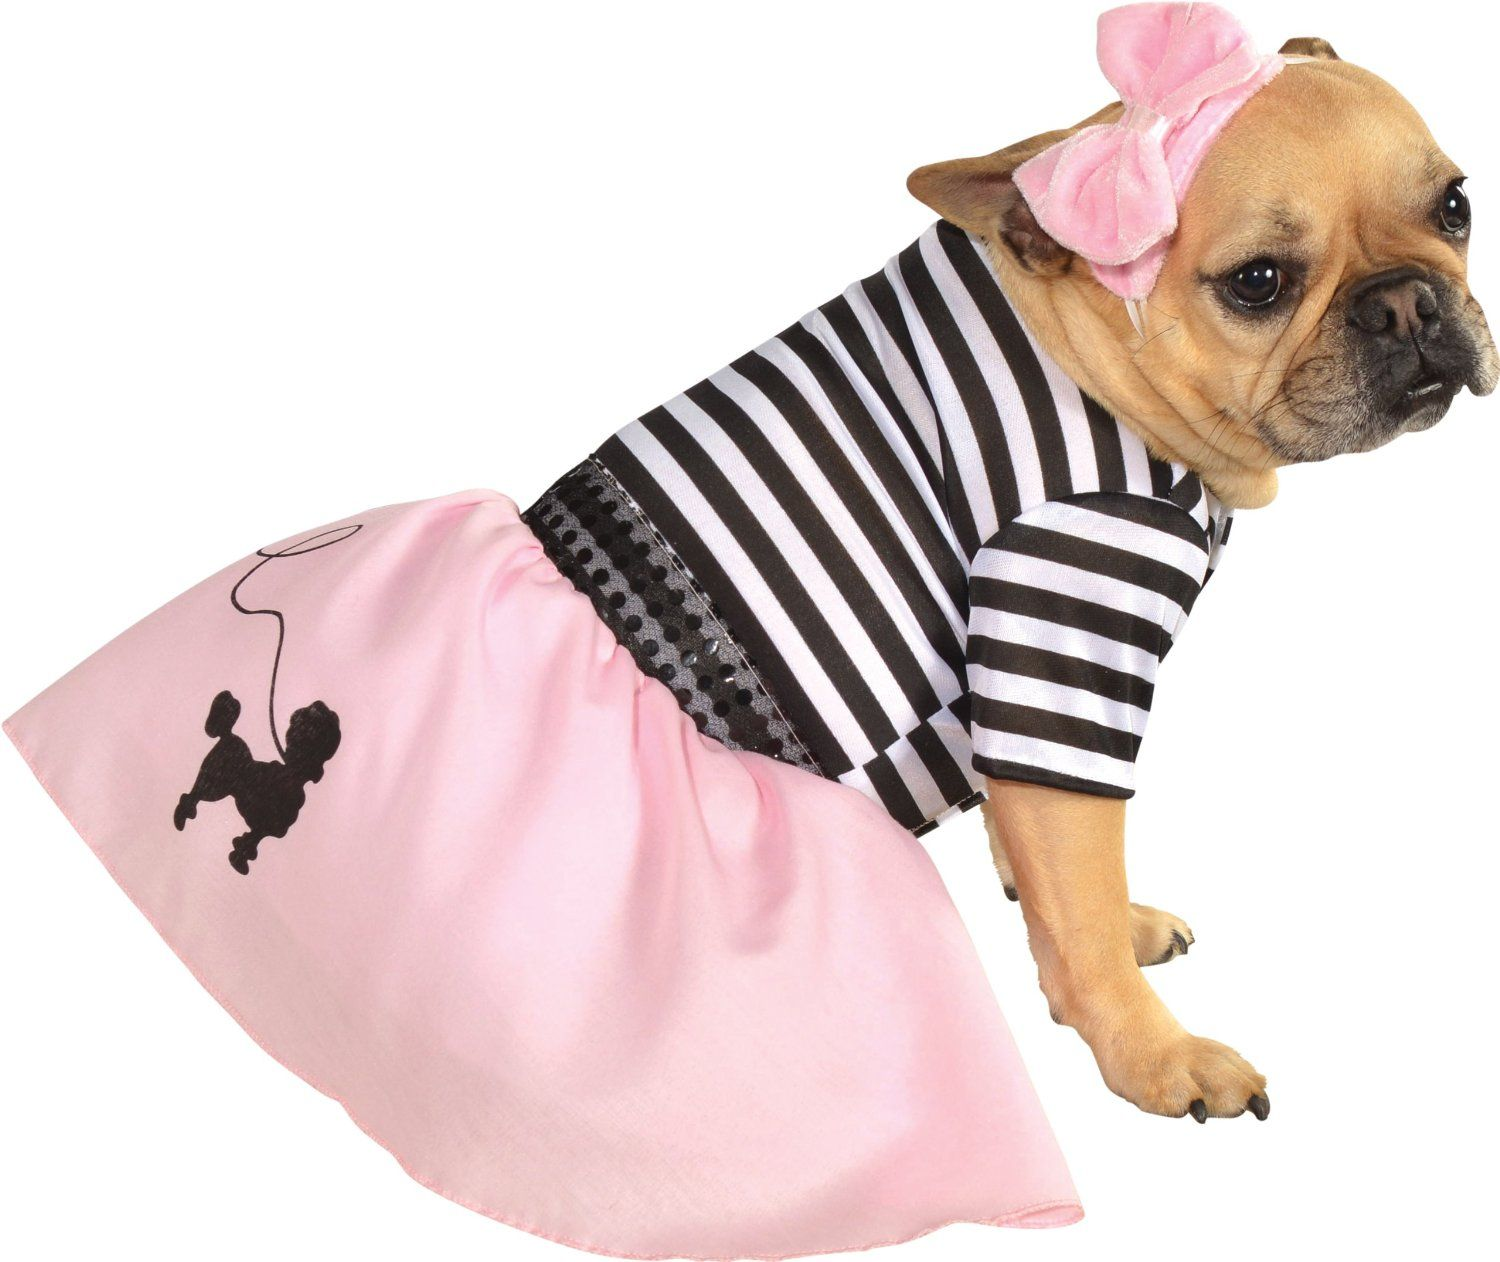 Check Out This Cute Small Dog Dress Costume Girl Dog Costumes